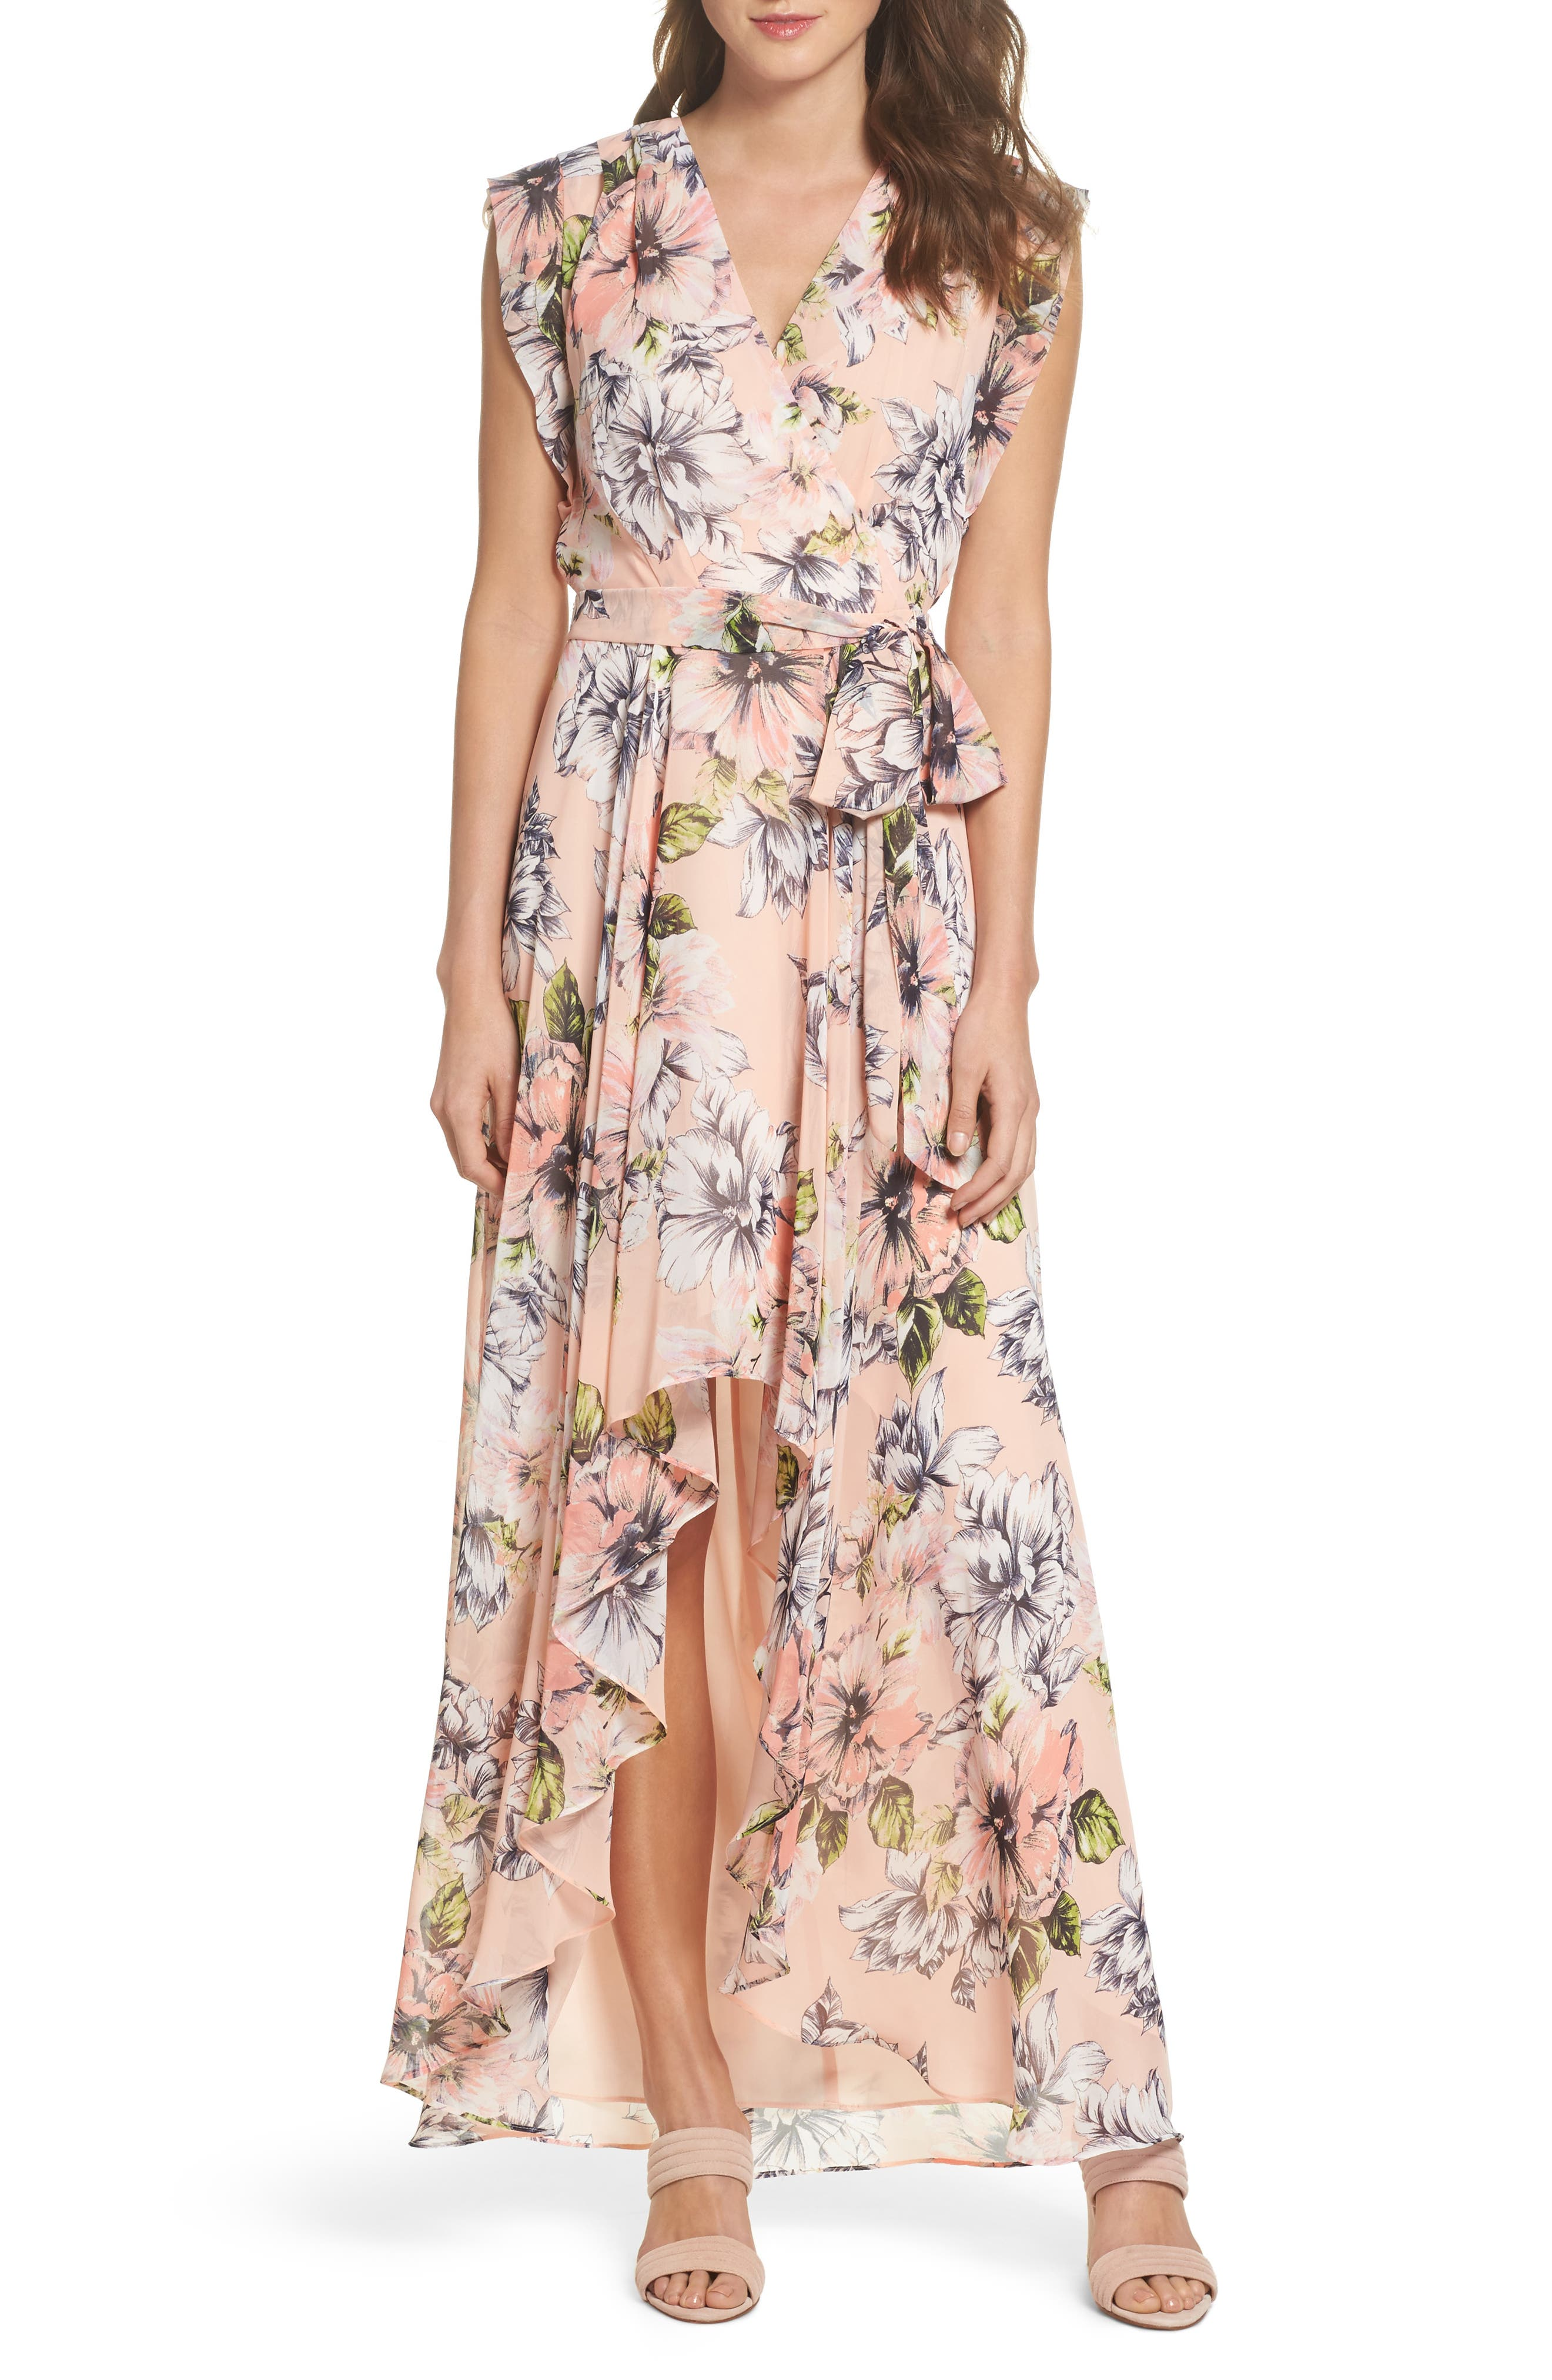 ELIZA J Floral Ruffle High/Low Maxi Dress, Main, color, BLUSH